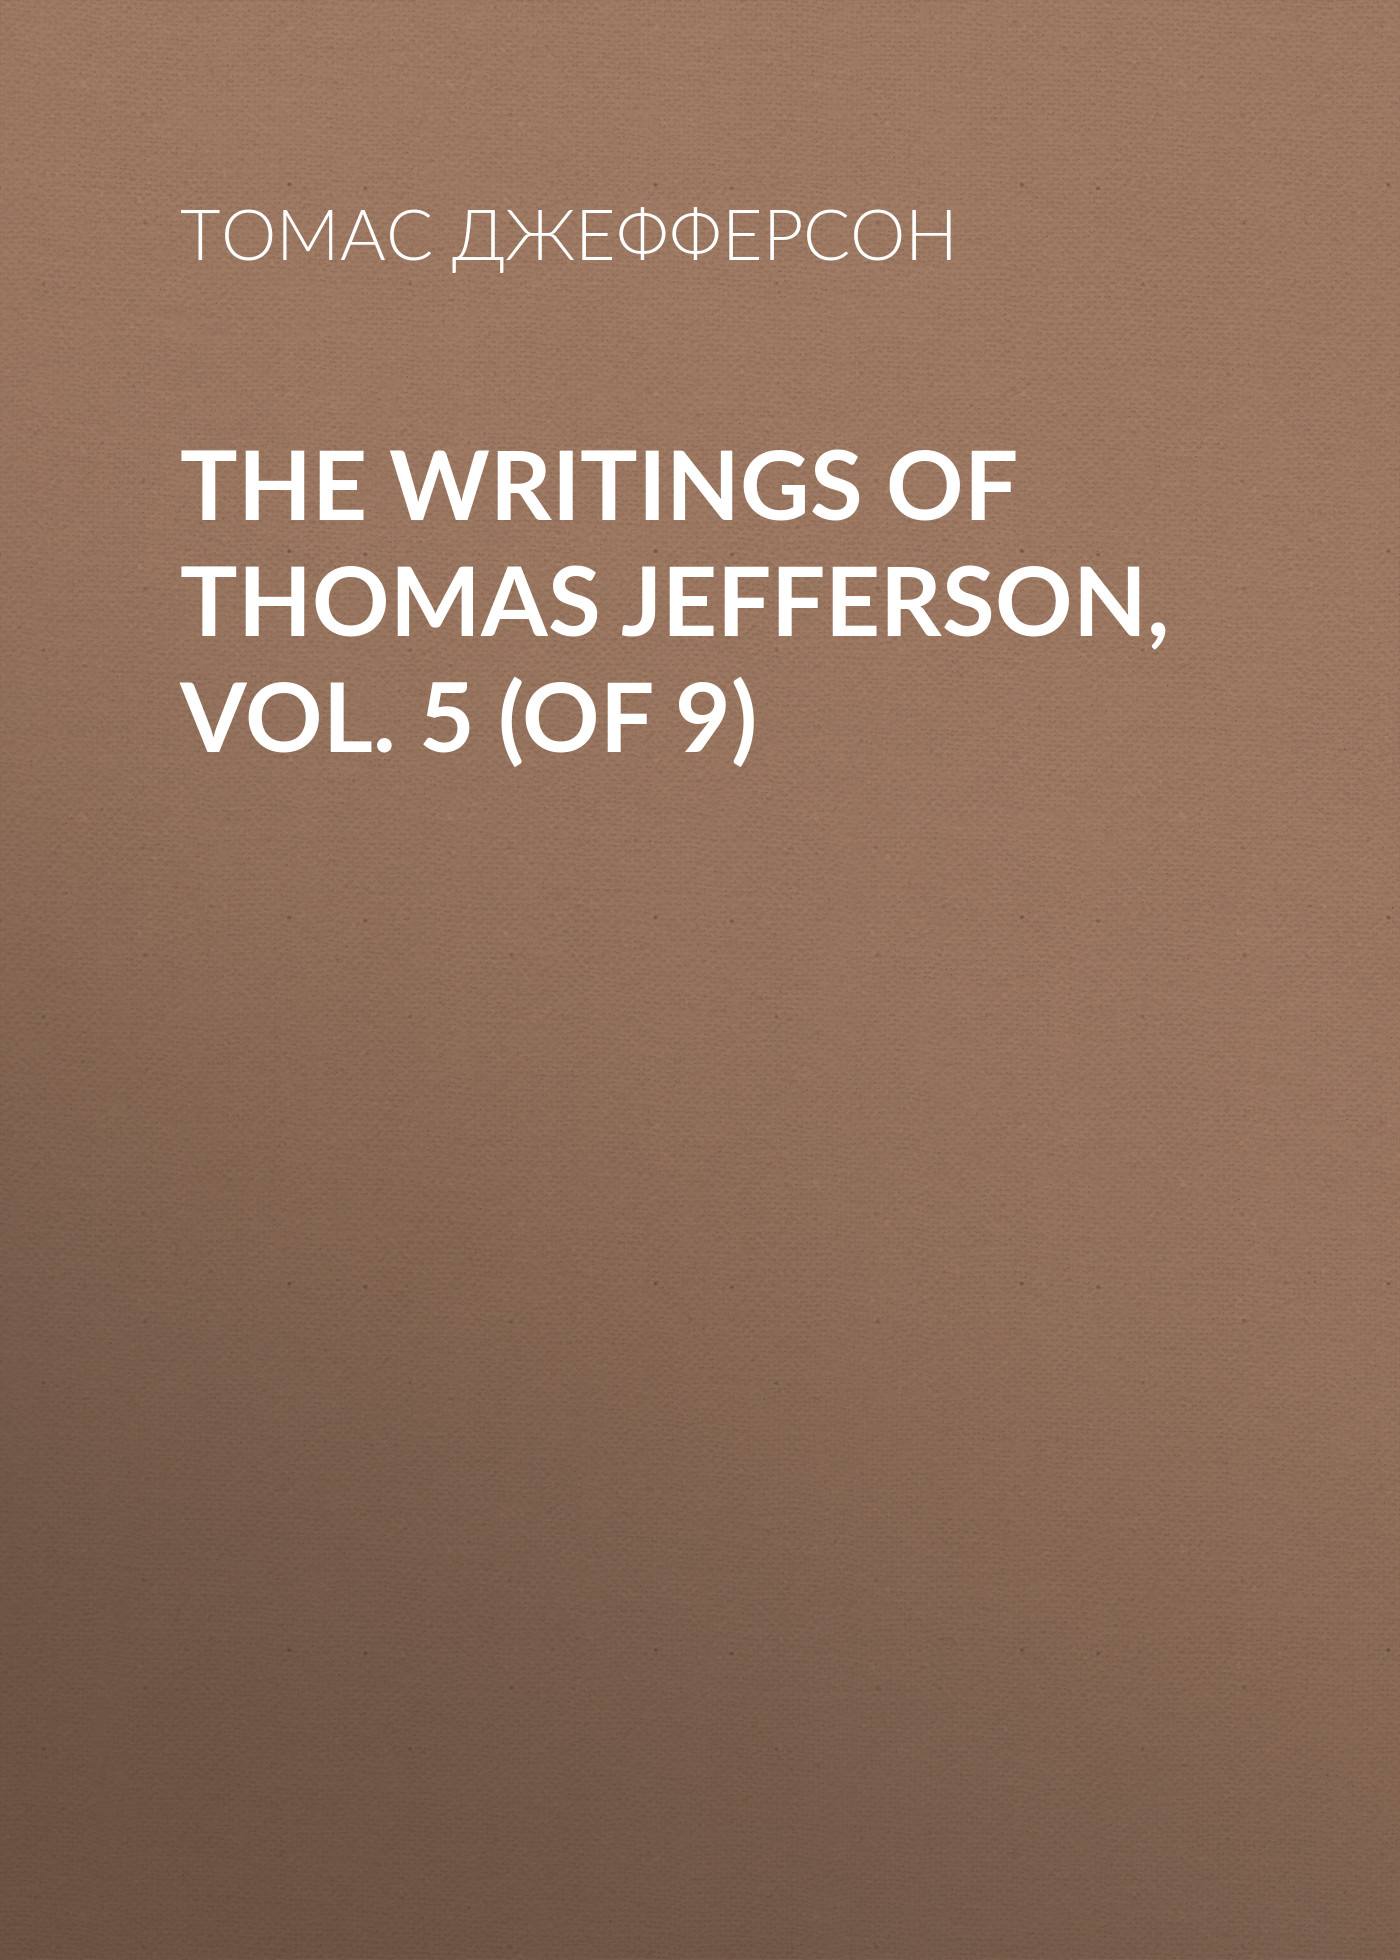 Томас Джефферсон The Writings of Thomas Jefferson, Vol. 5 (of 9) jack of fables vol 9 the end